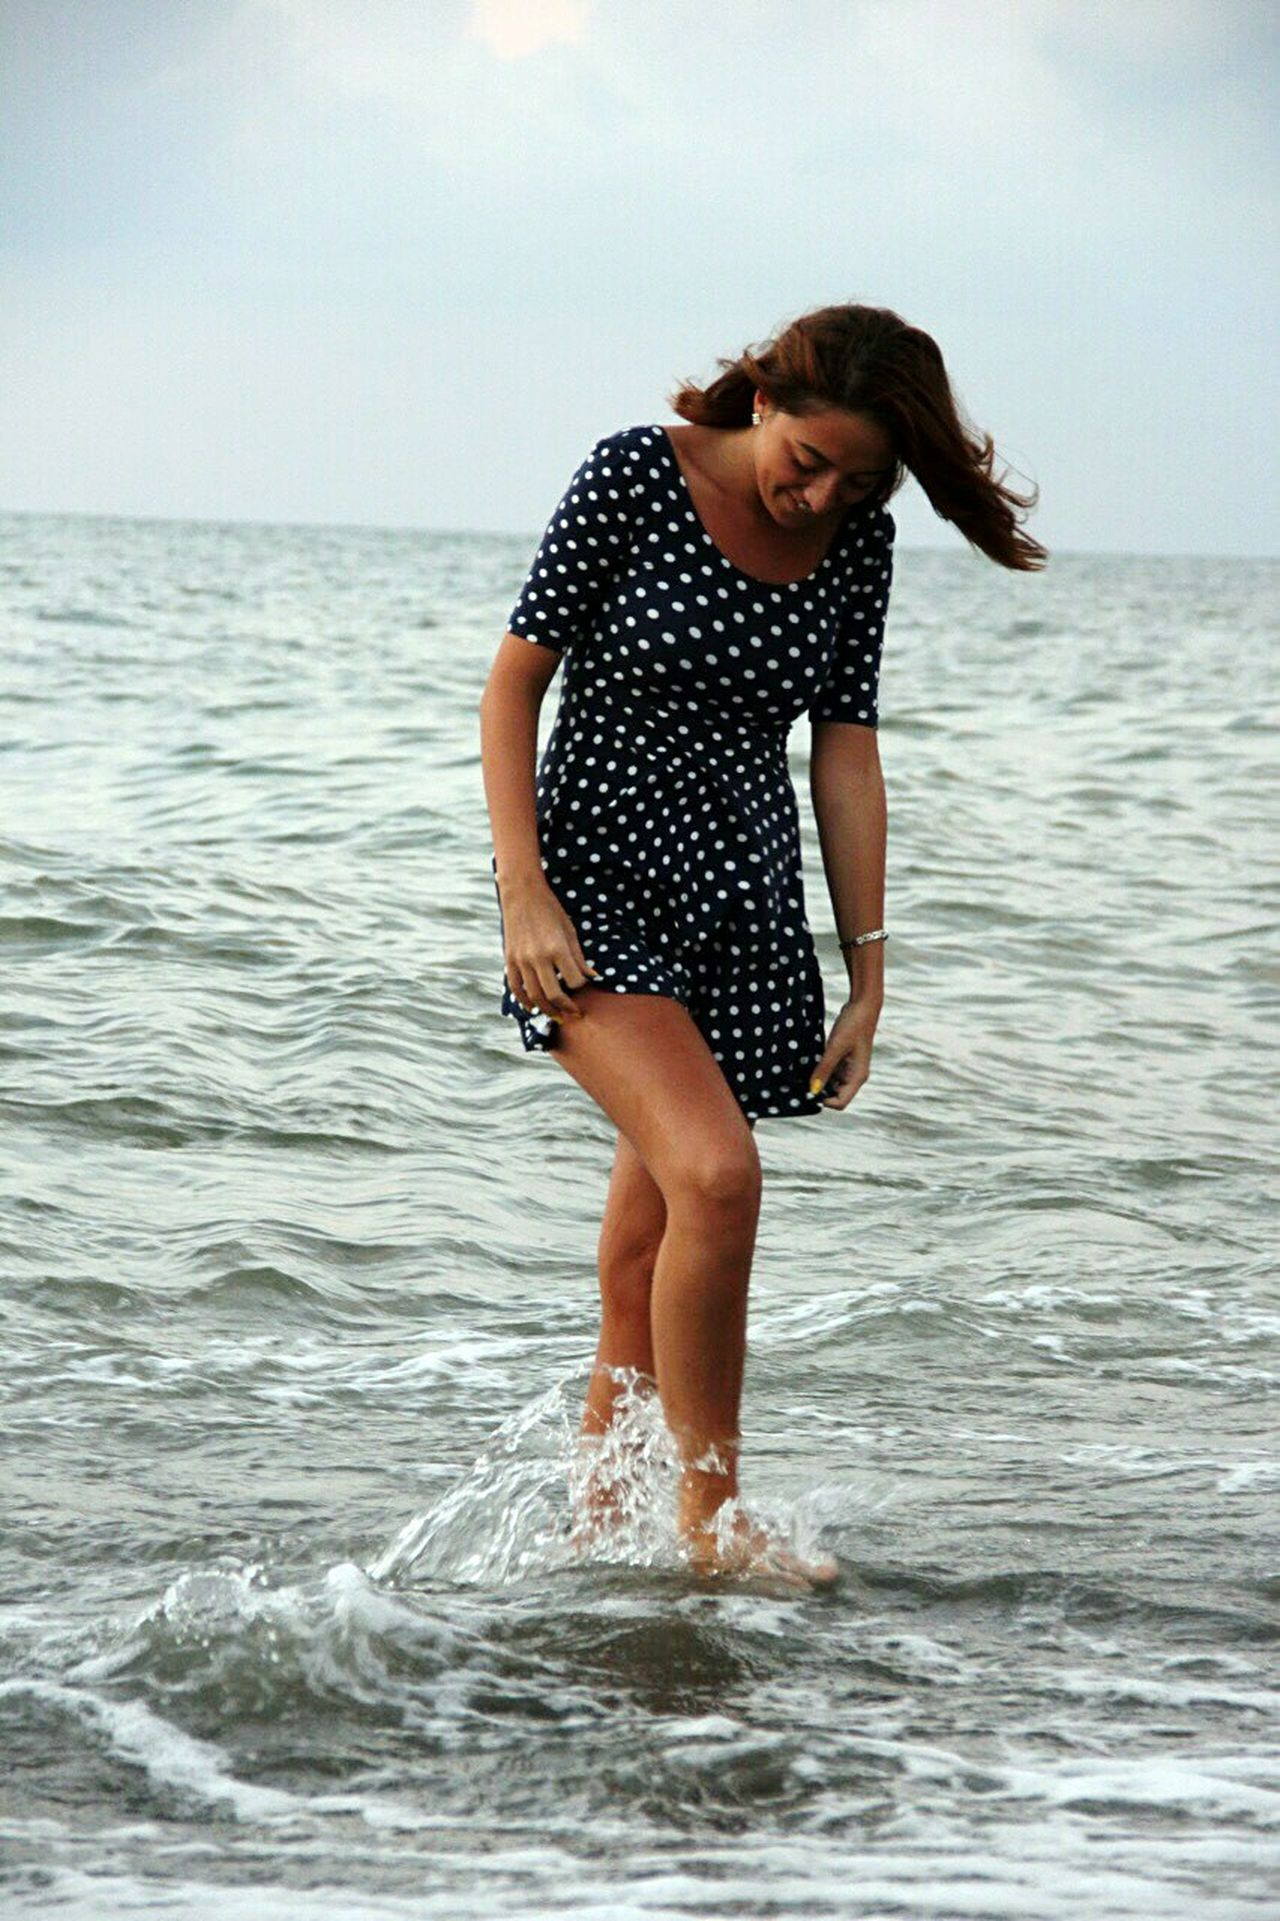 Sea Fun Beach Summer Motion Vacations One Person Water Travel Enjoyment Nature Beautiful People Young Adult Outdoors Beauty Day Black Sea Sea Waves Wind Windblown Hair Short Dress Wetlegs Fillings Filling The Nature Yellownails